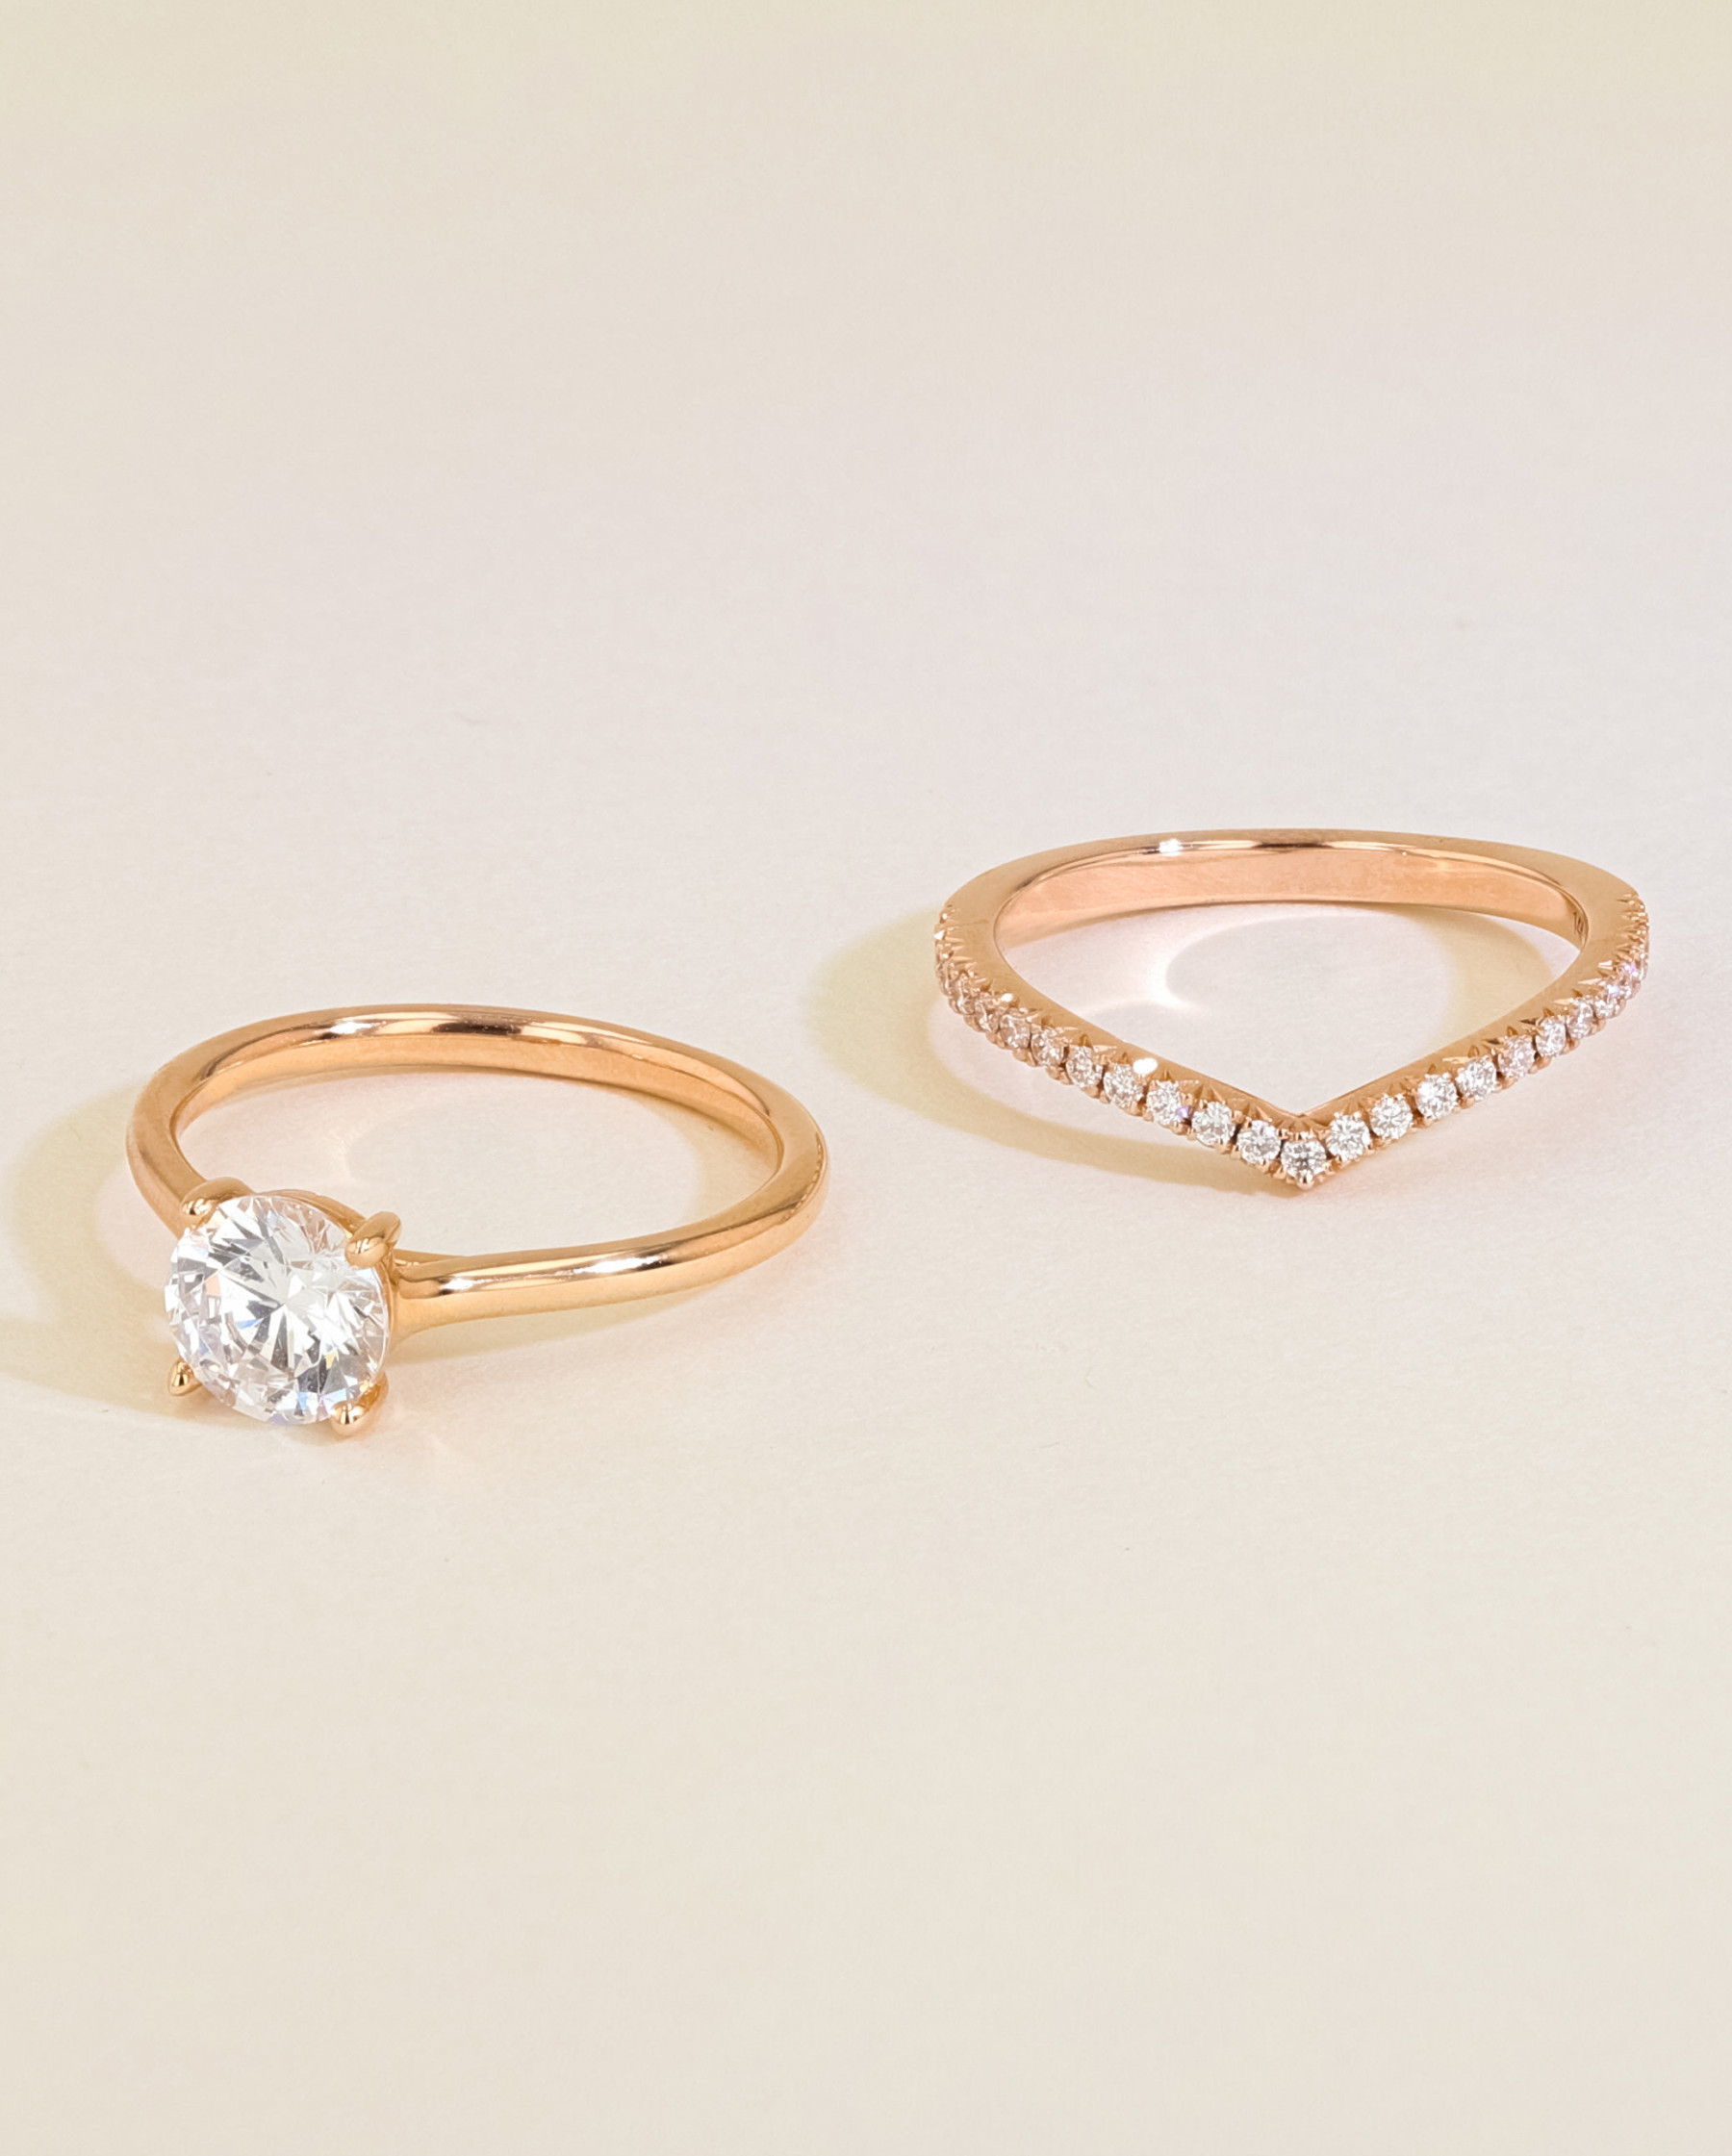 Solitaire Diamond Engagement Ring Set side by side